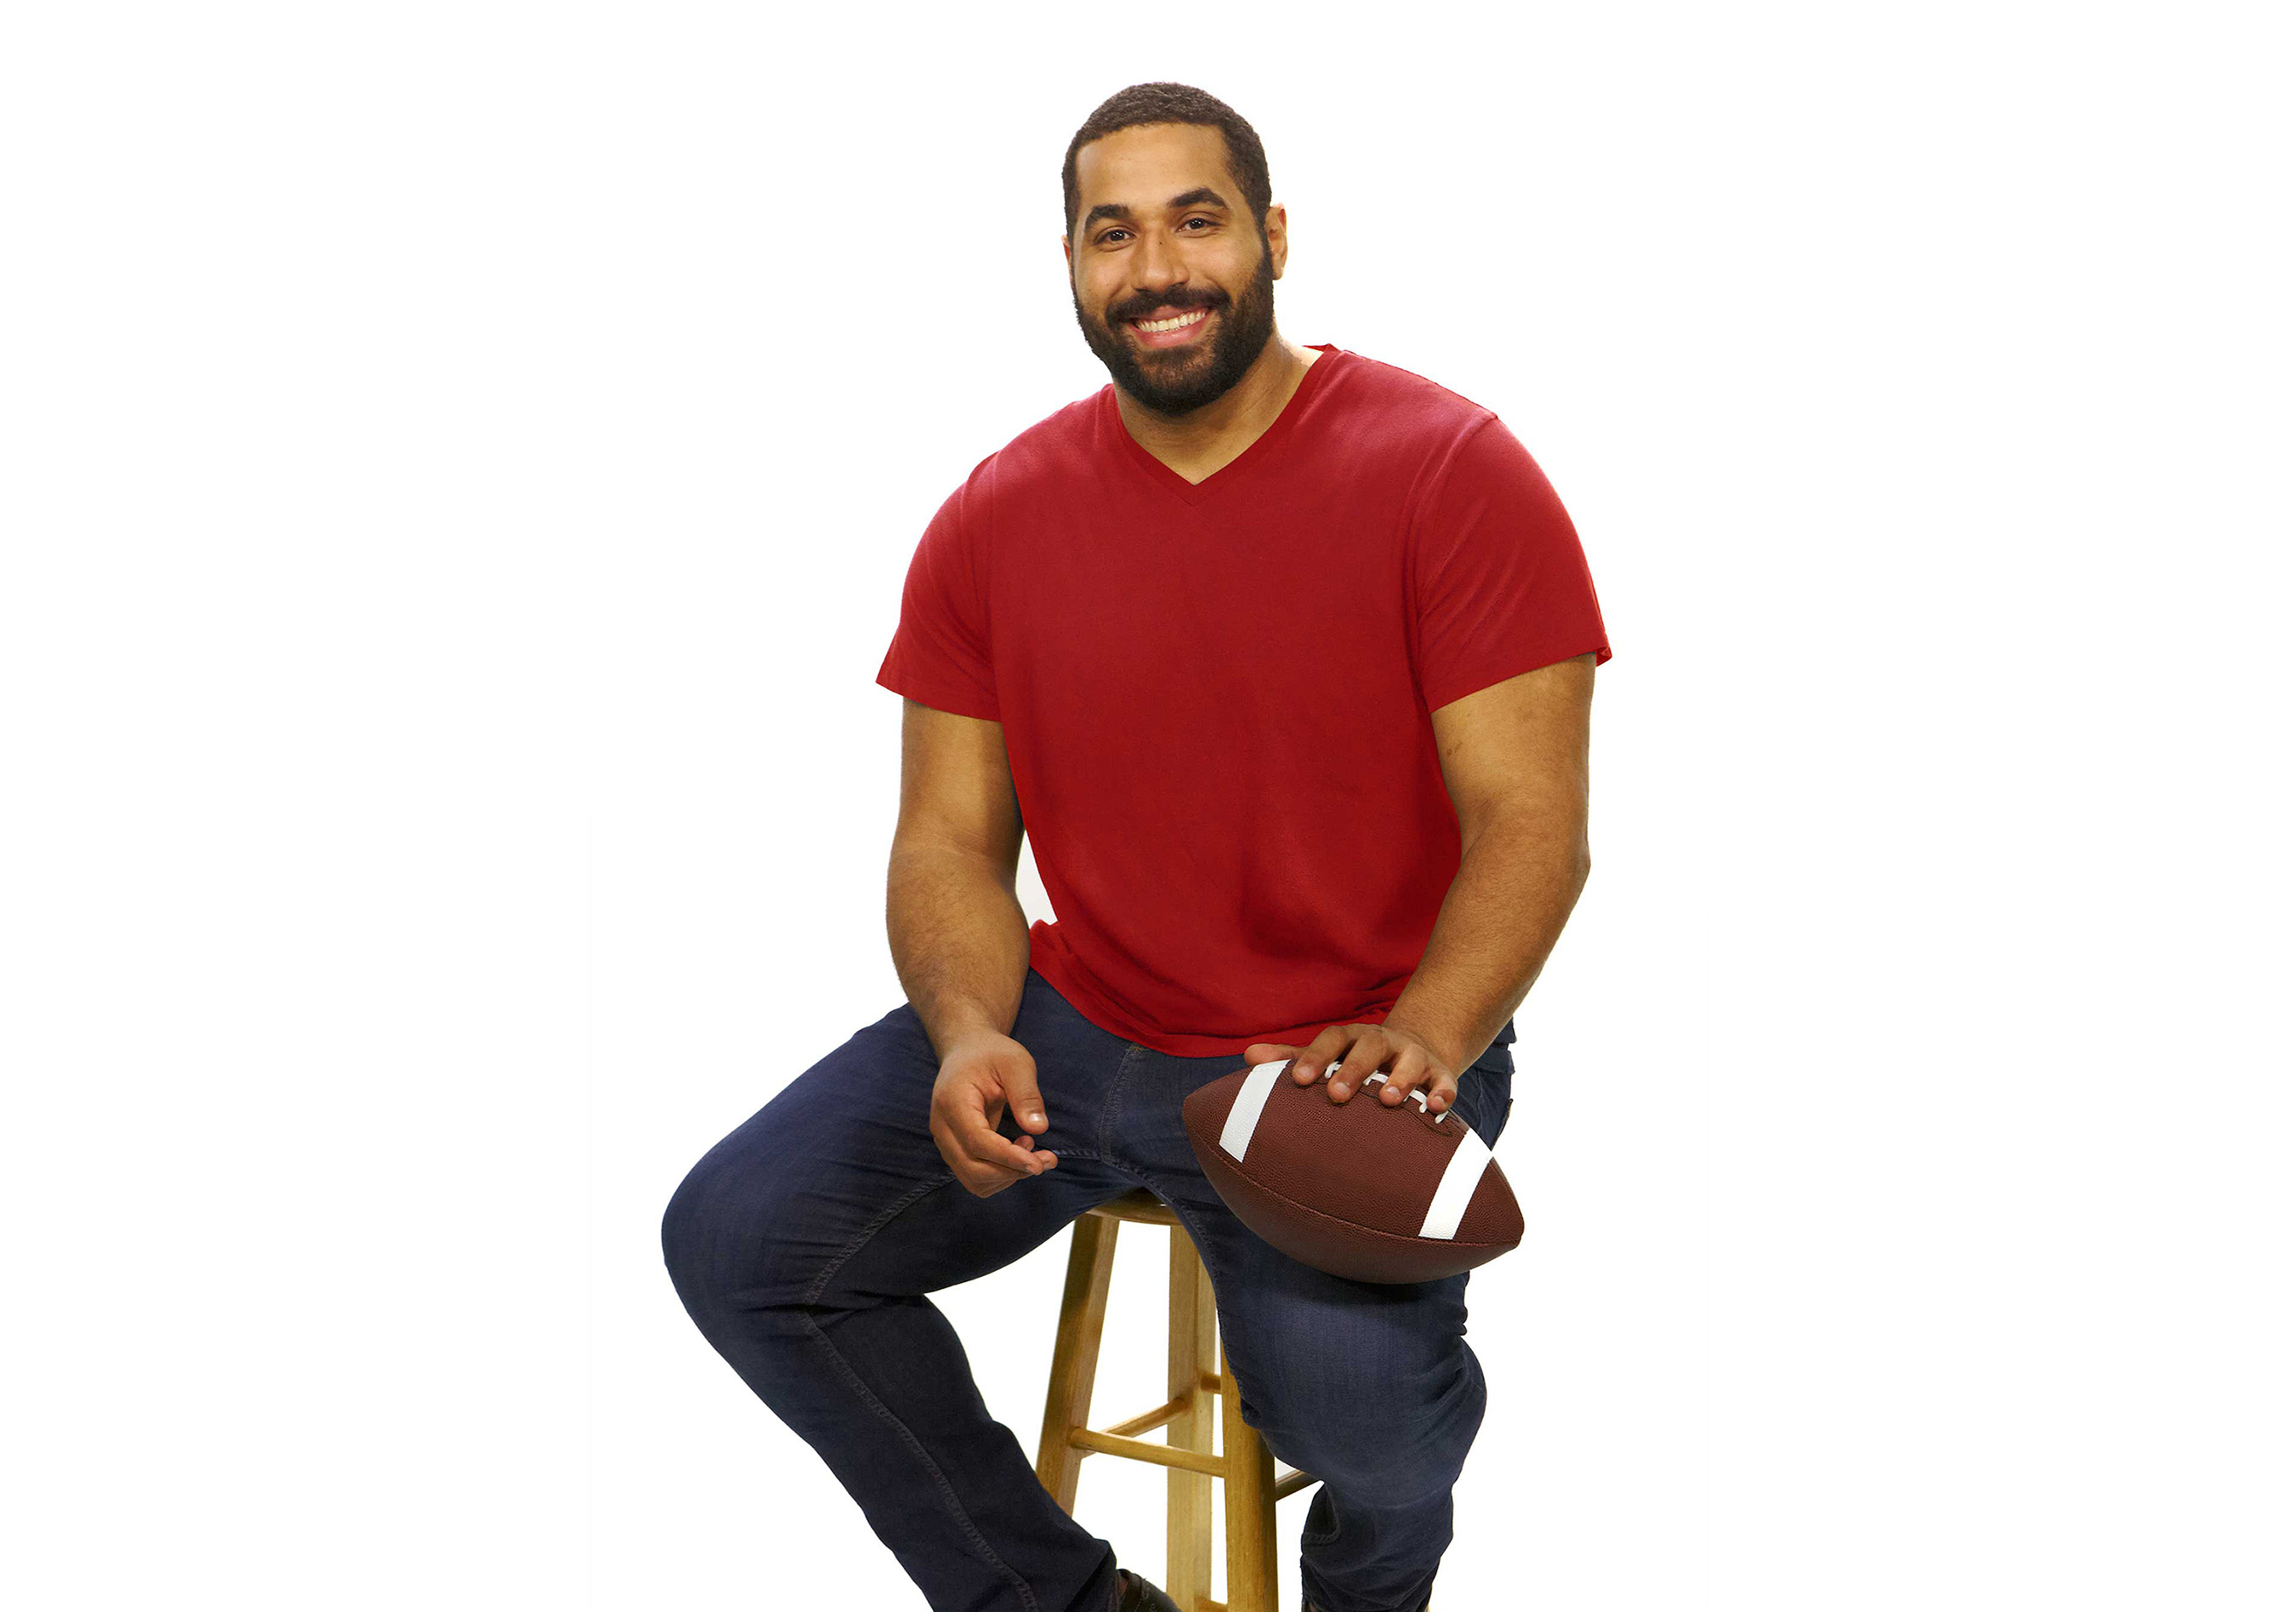 Football player & mathlete® John Urschel shows students how STEM is cool & important for any career.